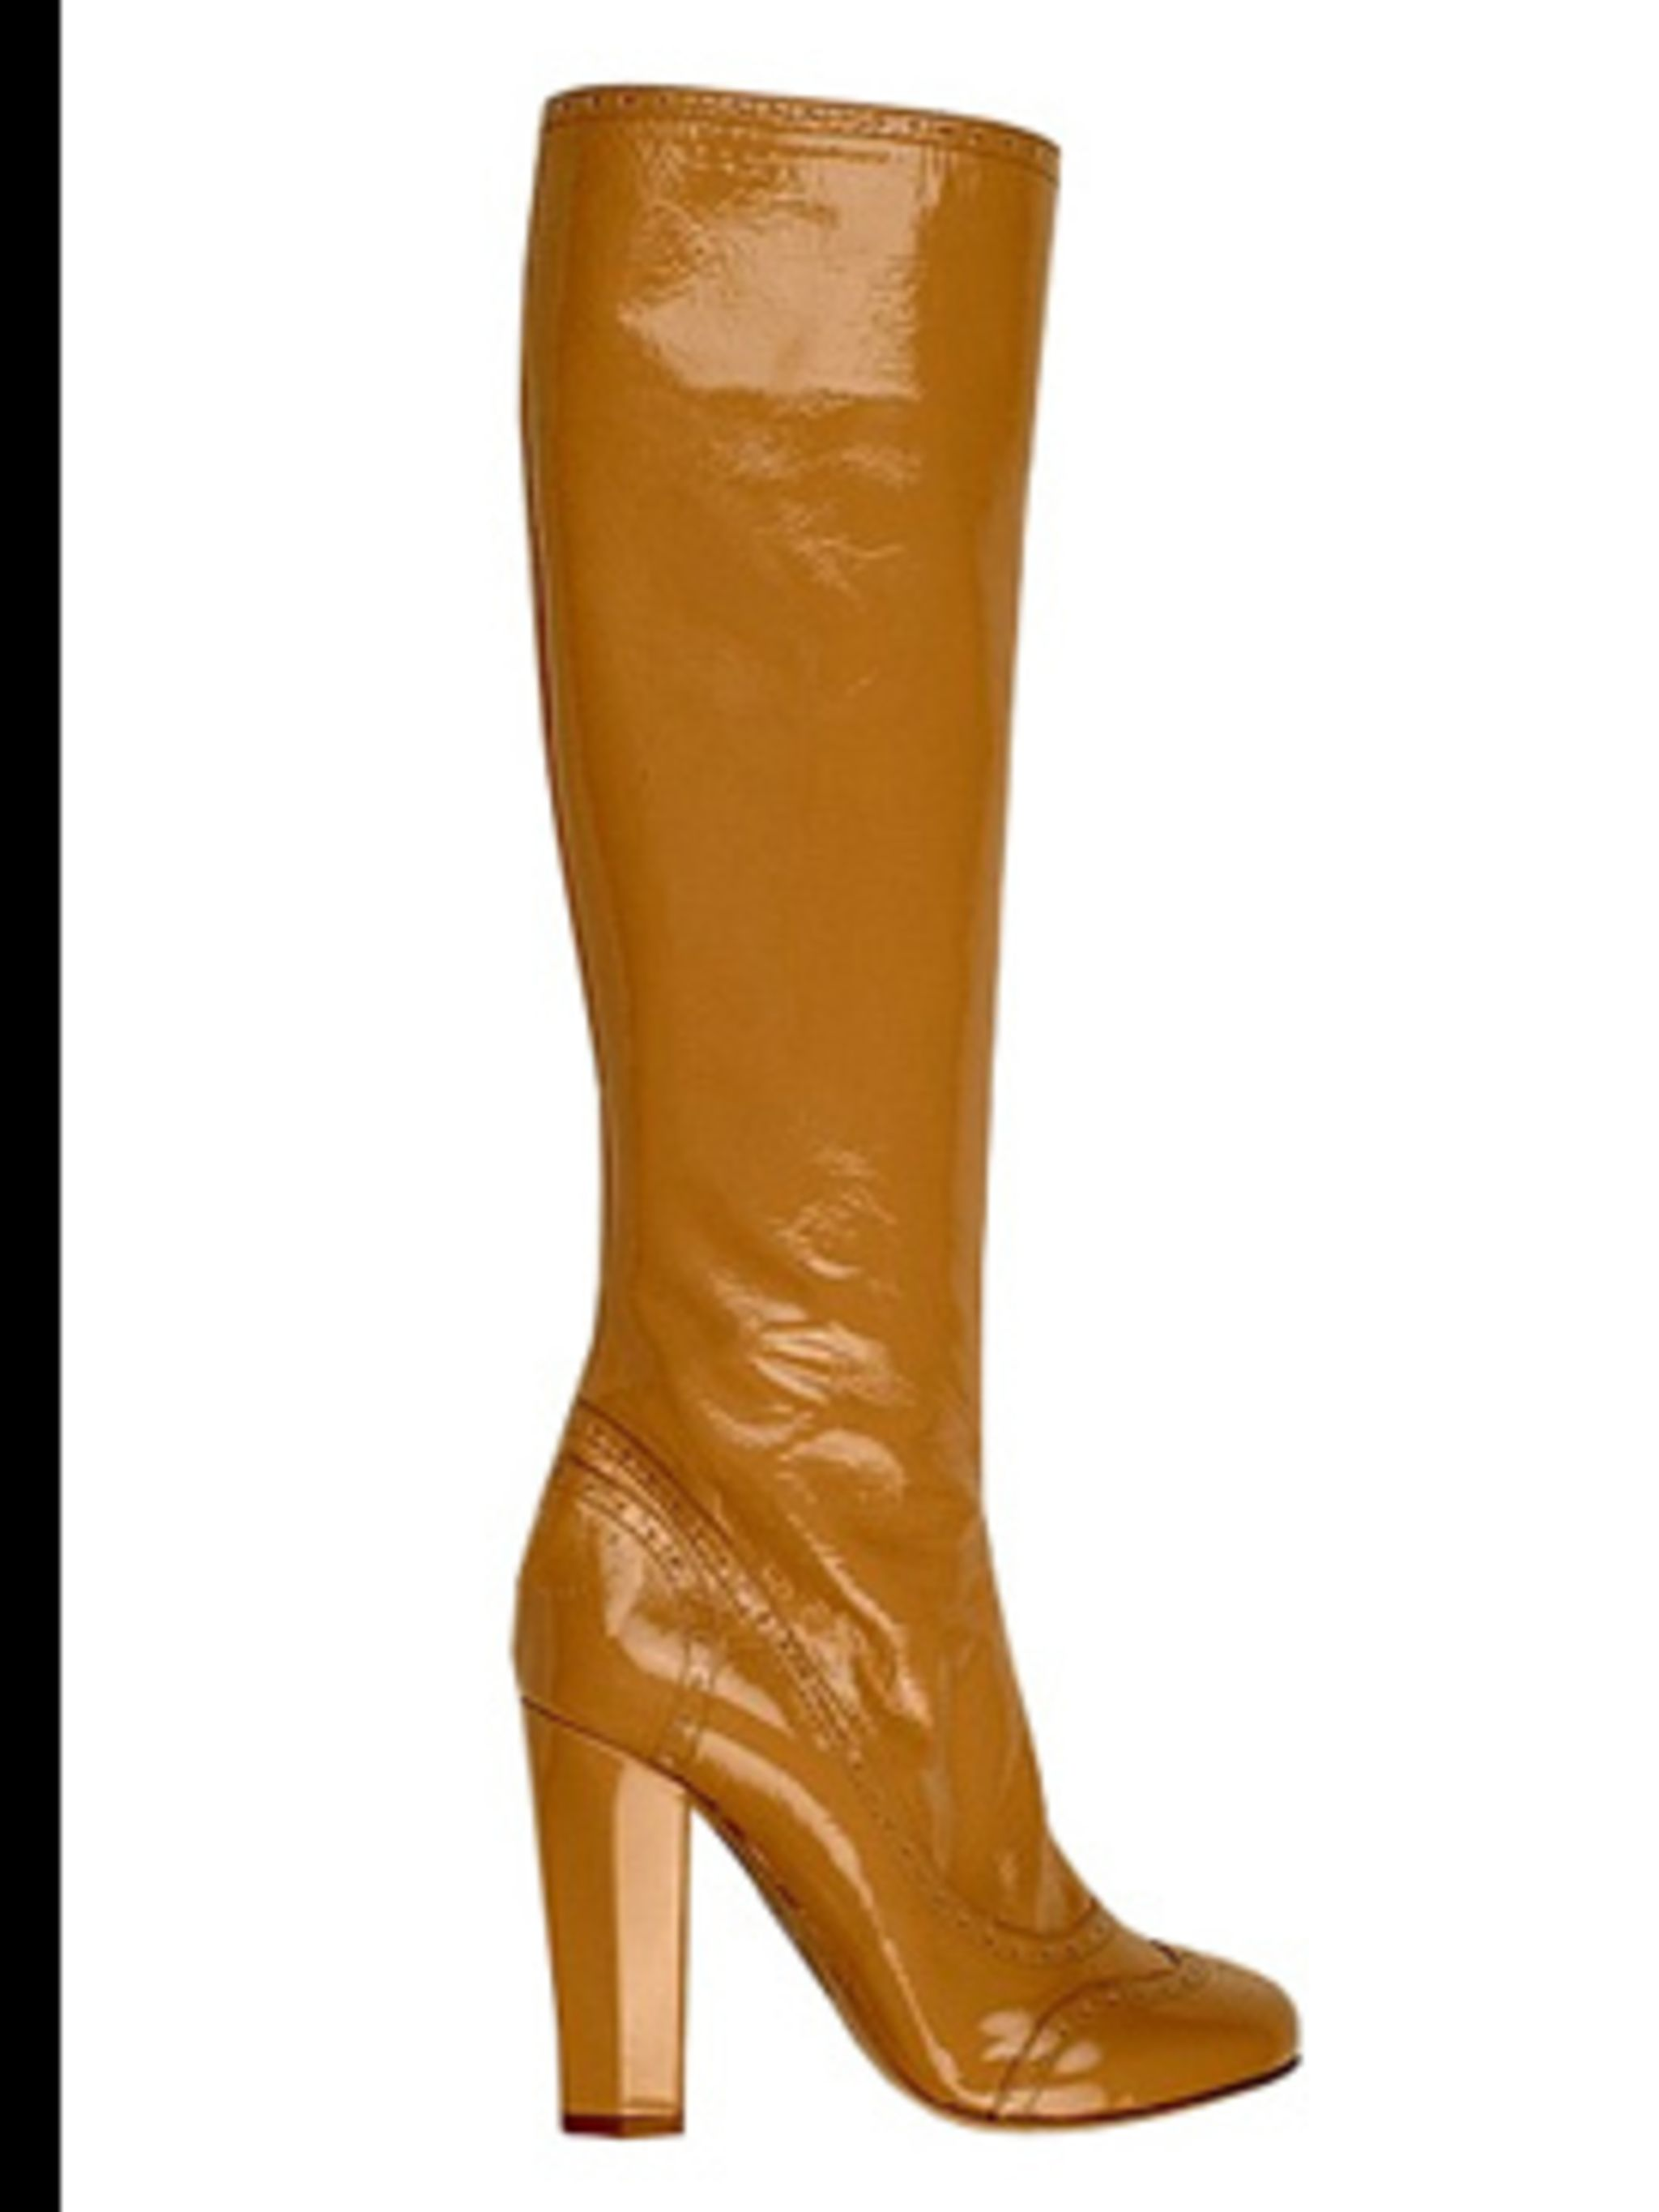 <p>Patent boots £275 by Miu Miu, for stockists call 020 7409 0900</p>